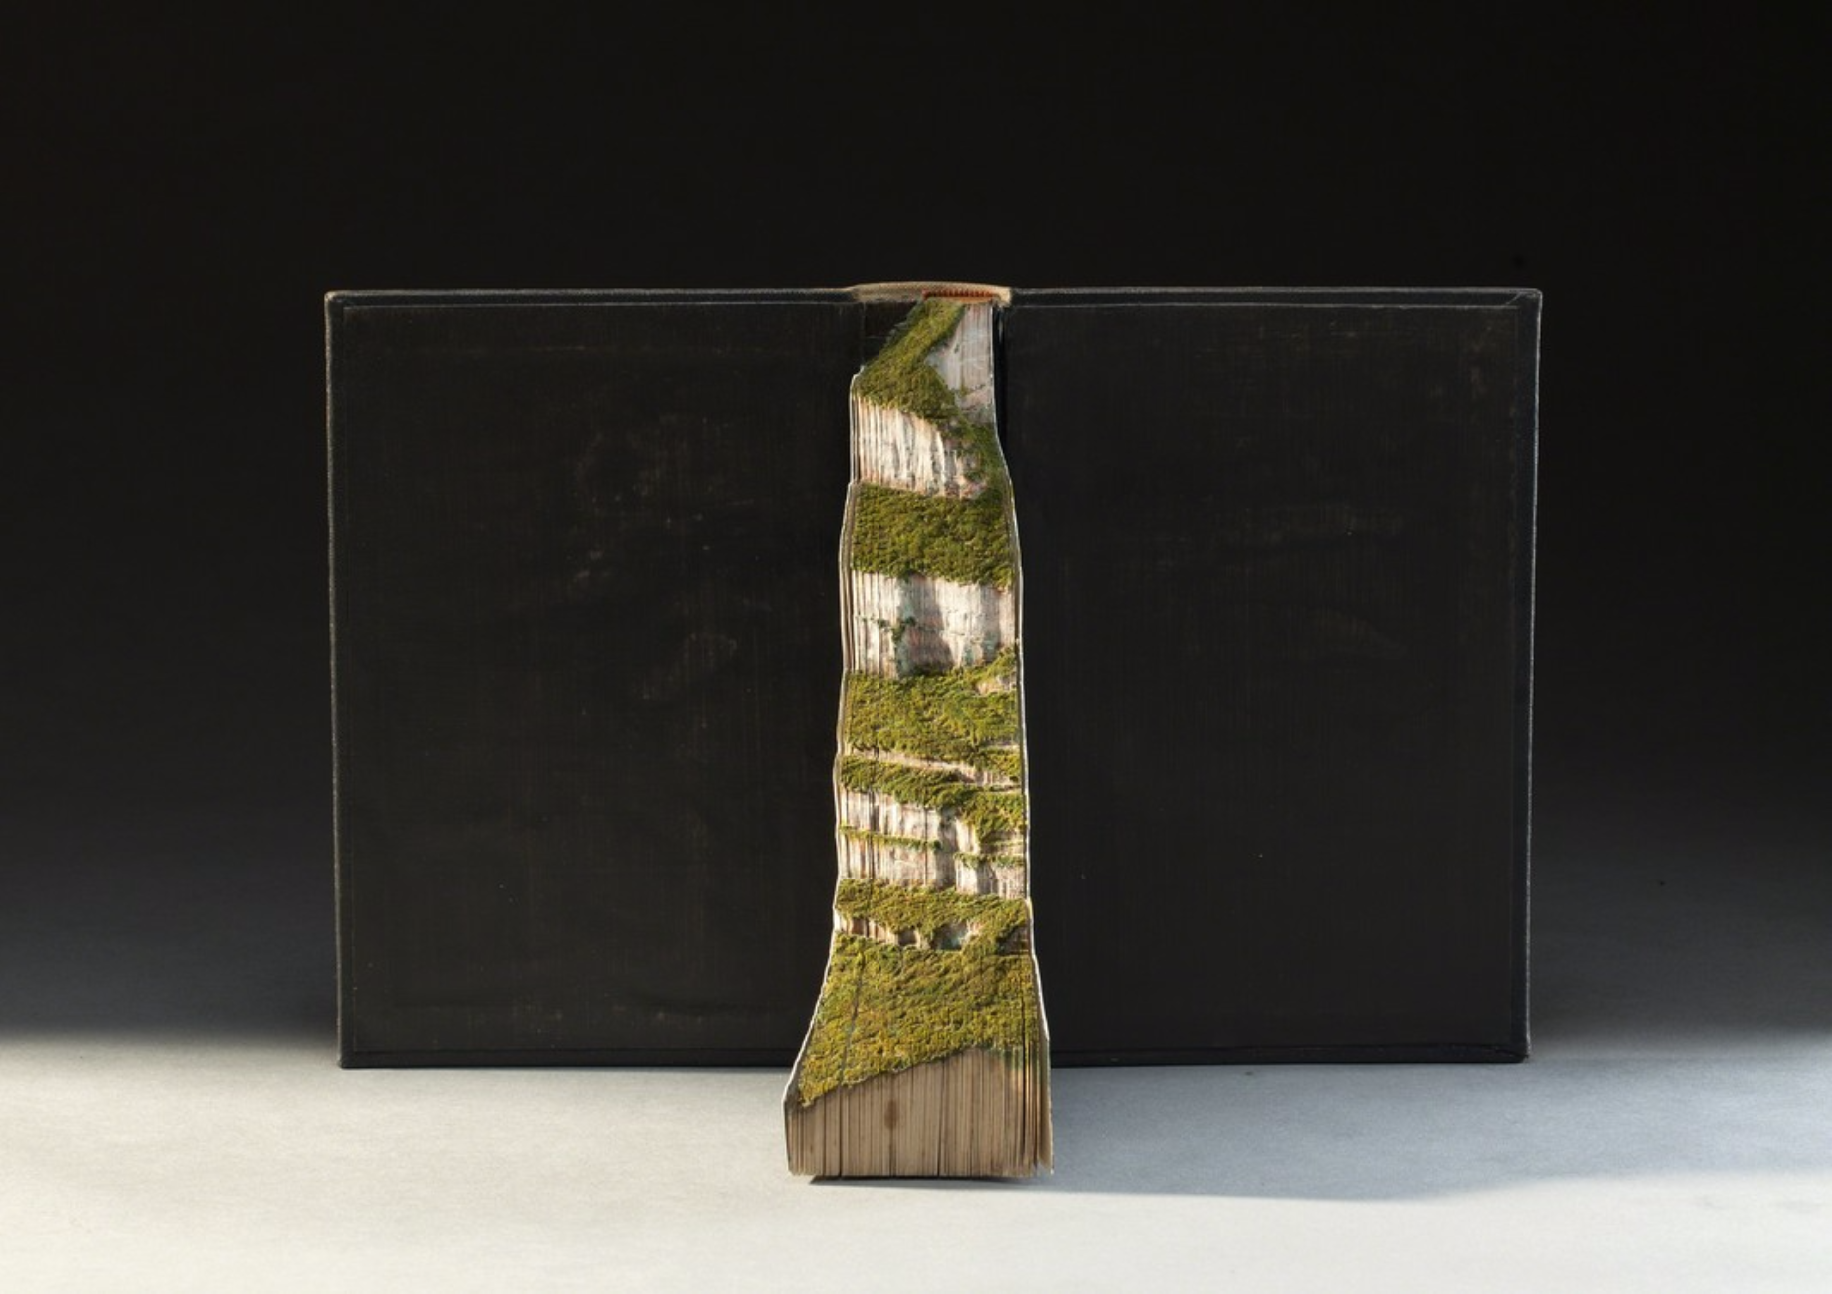 Guy Laramee Creates Hyperrealistic Topographic Landscapes Carved into Old Books - Estudos Literarios Onde Eles Moram